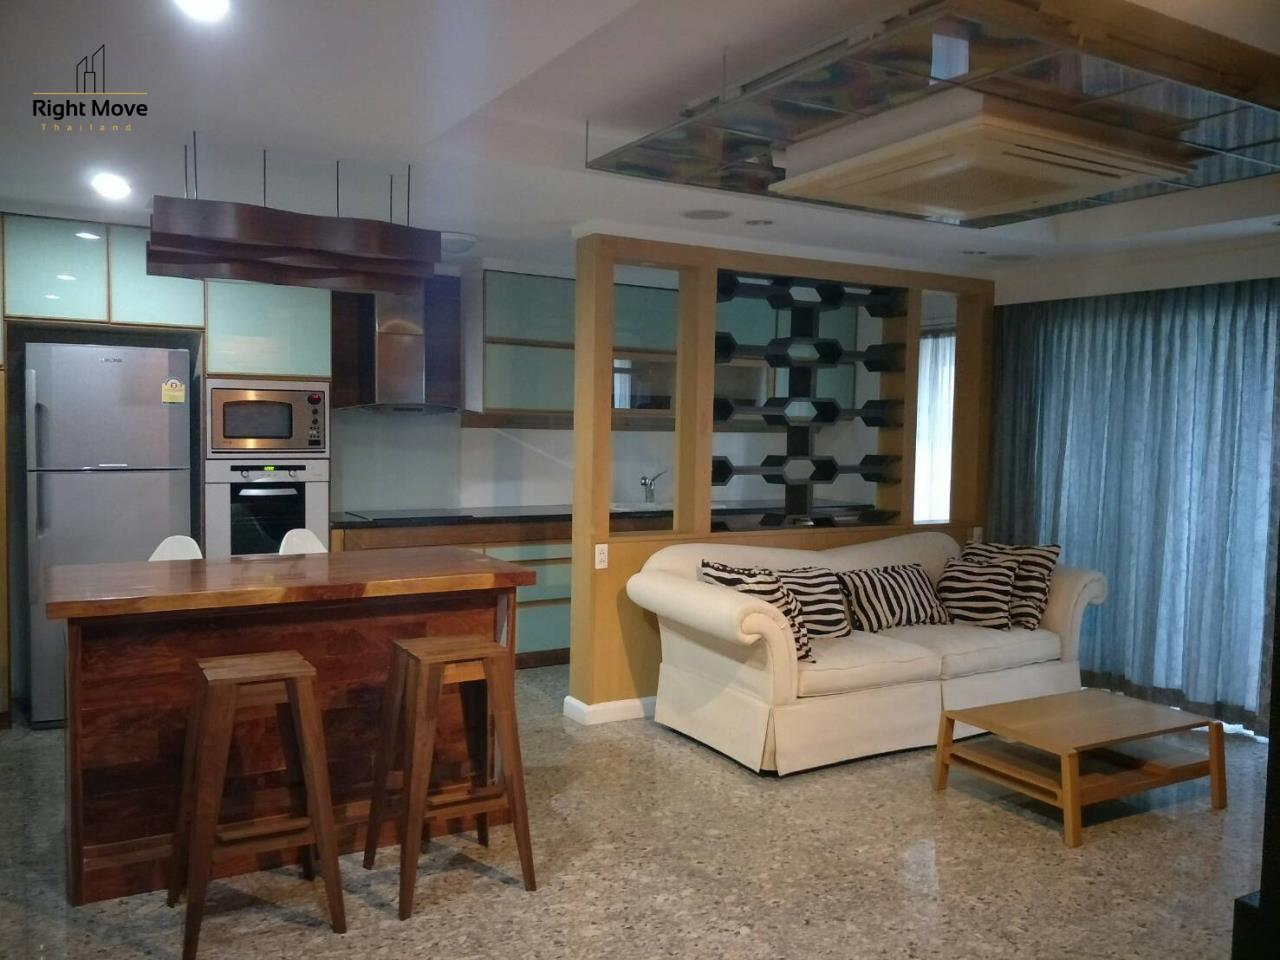 Right Move Thailand Agency's CS2431 Avenue 61 For Sale 14,300,000 THB 2 Bedrooms 102 Sqm 1